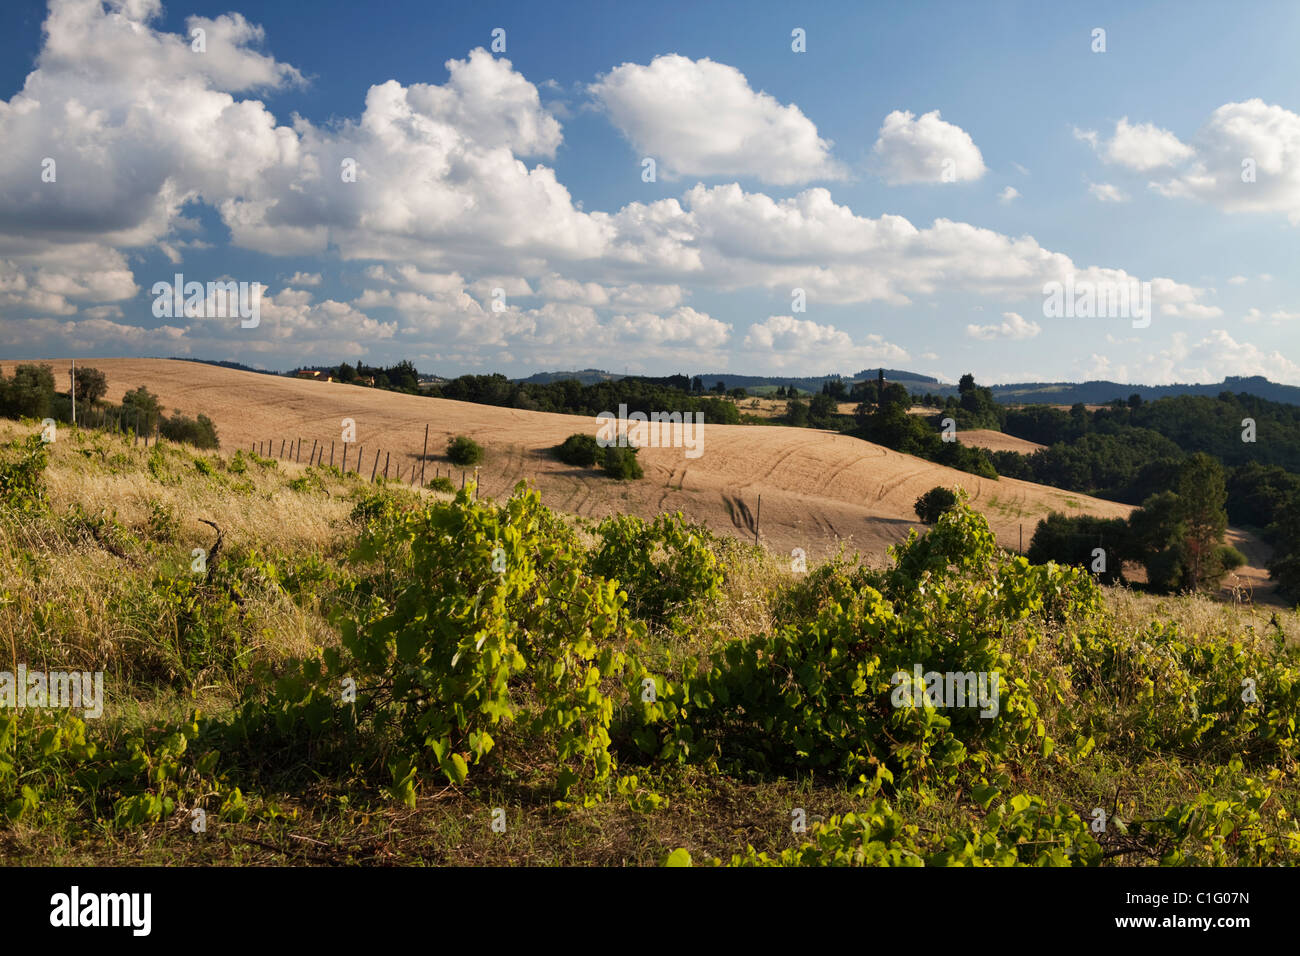 Tuscany hills and sky with fluffy clouds. Stock Photo